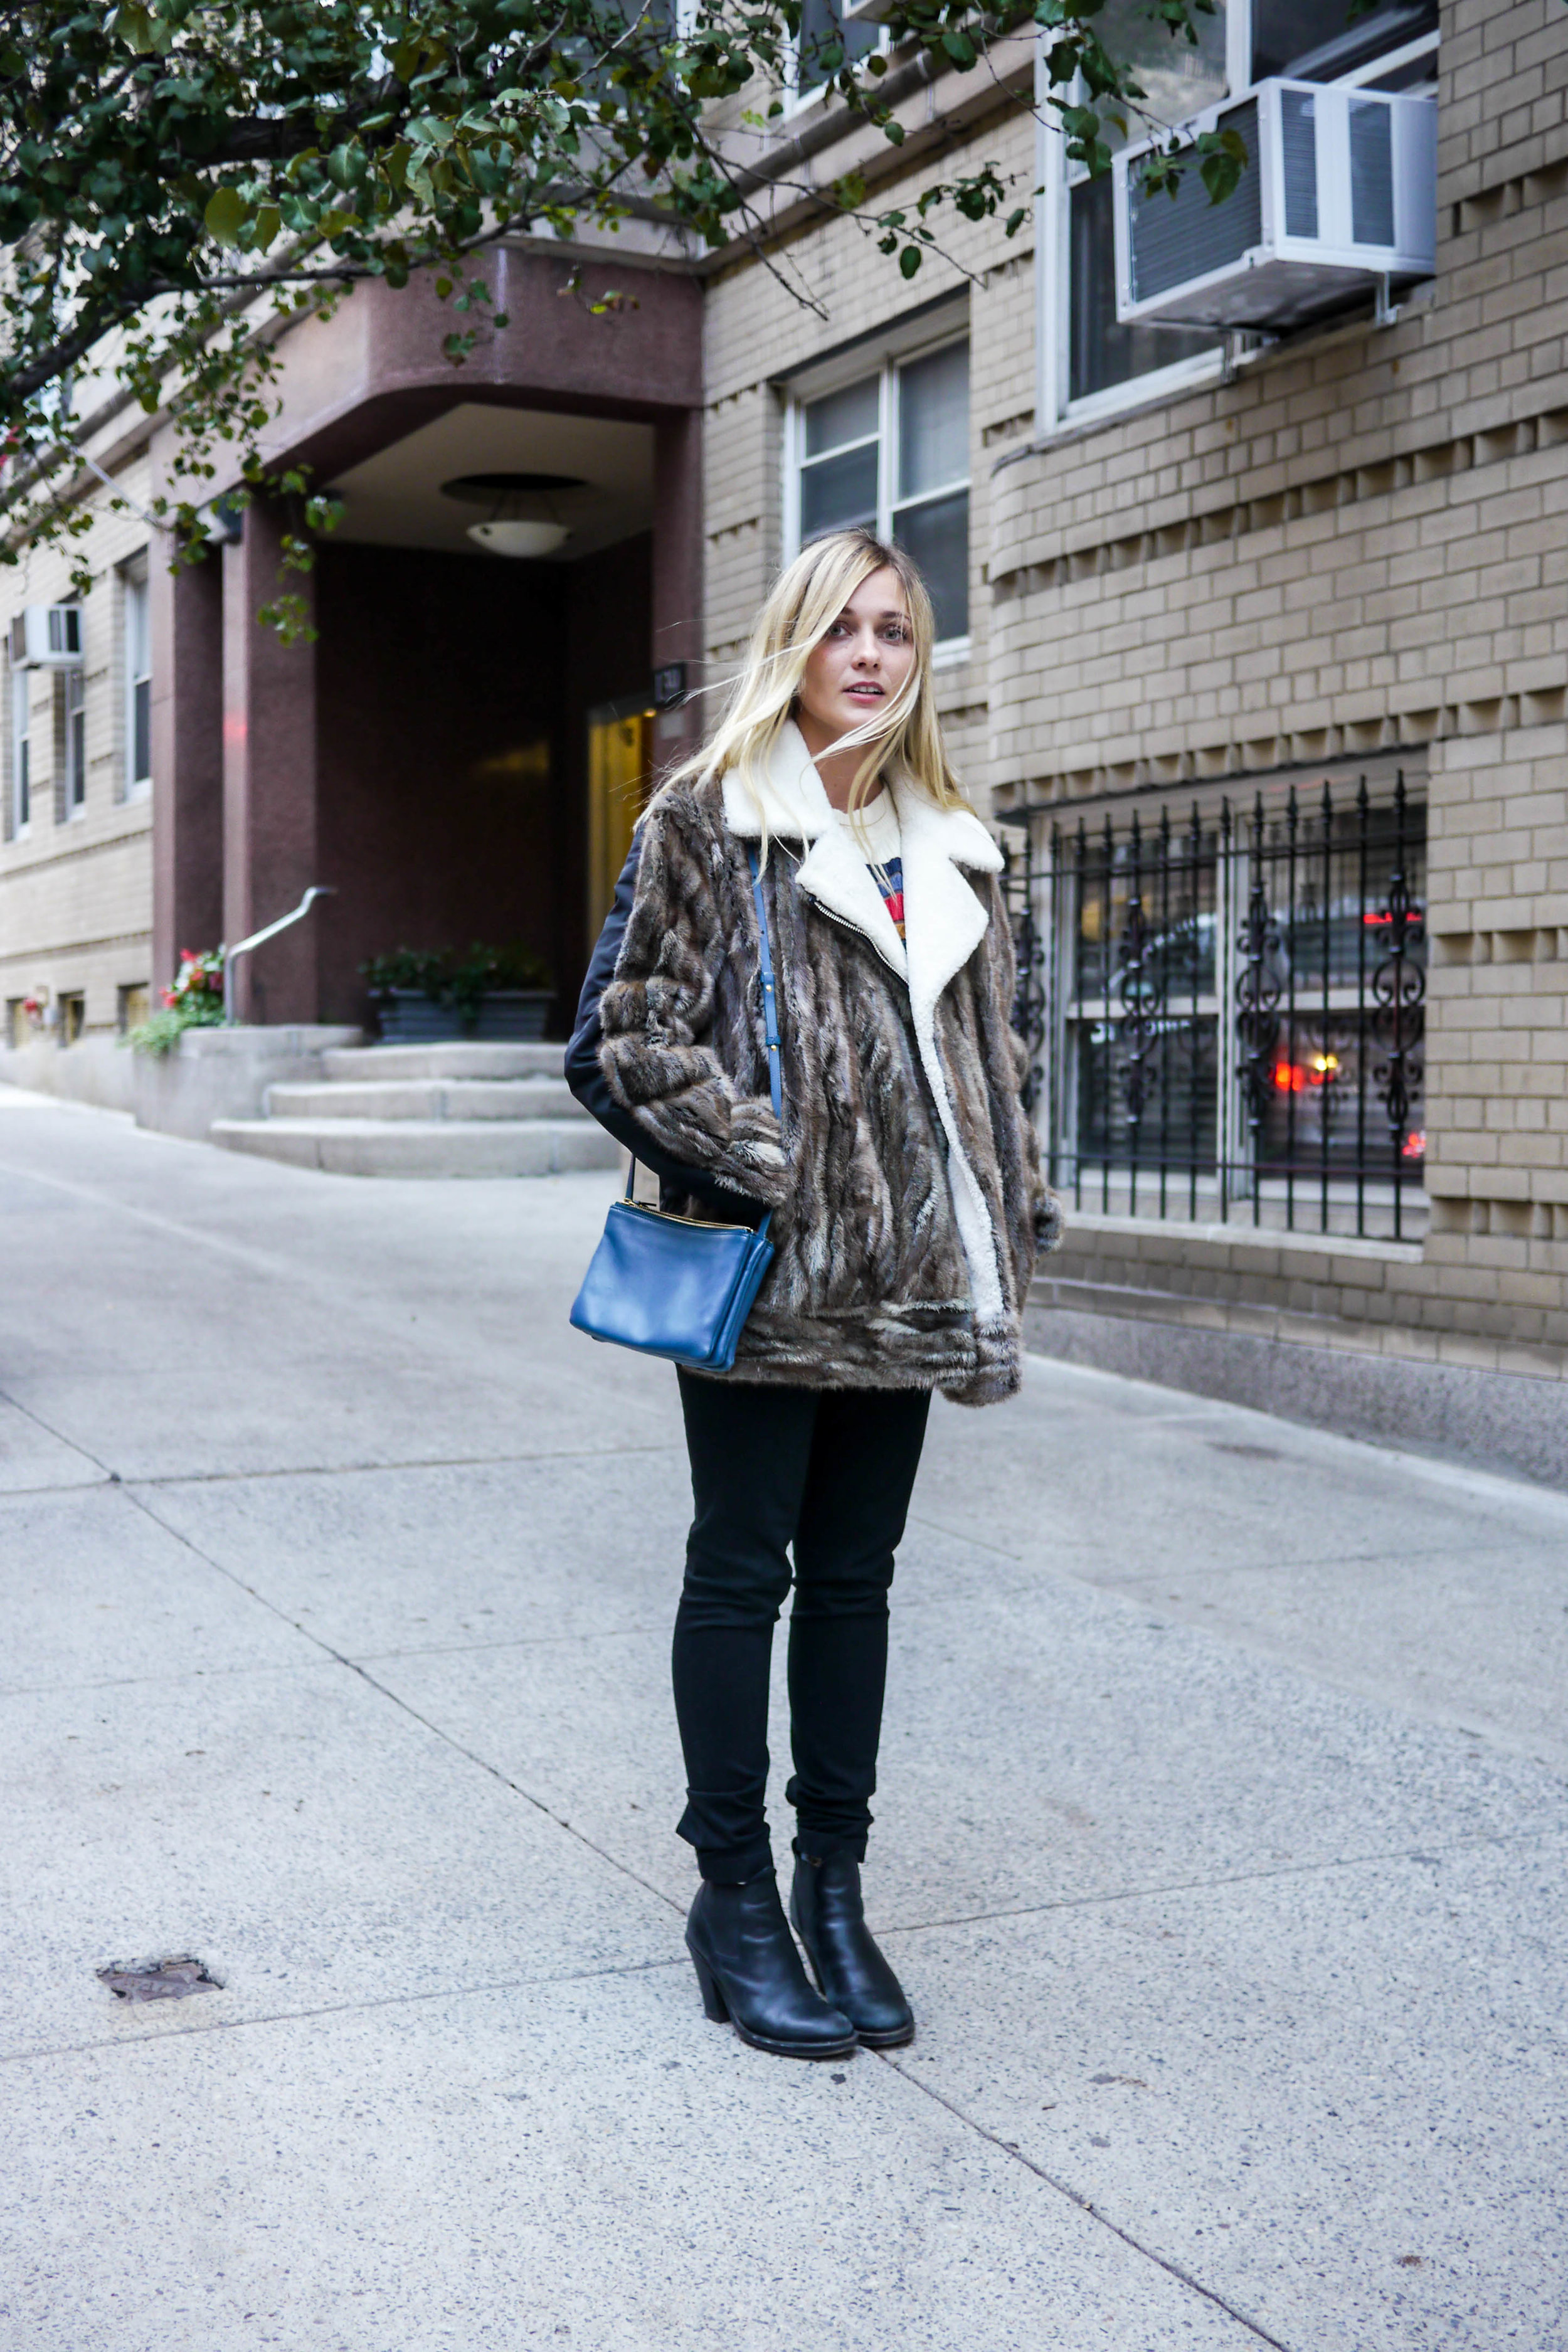 Top, Band of Outsiders ; Jeans, The Row ; Coat, No.21 ;    Bag, Céline    ;    Shoes, Acne